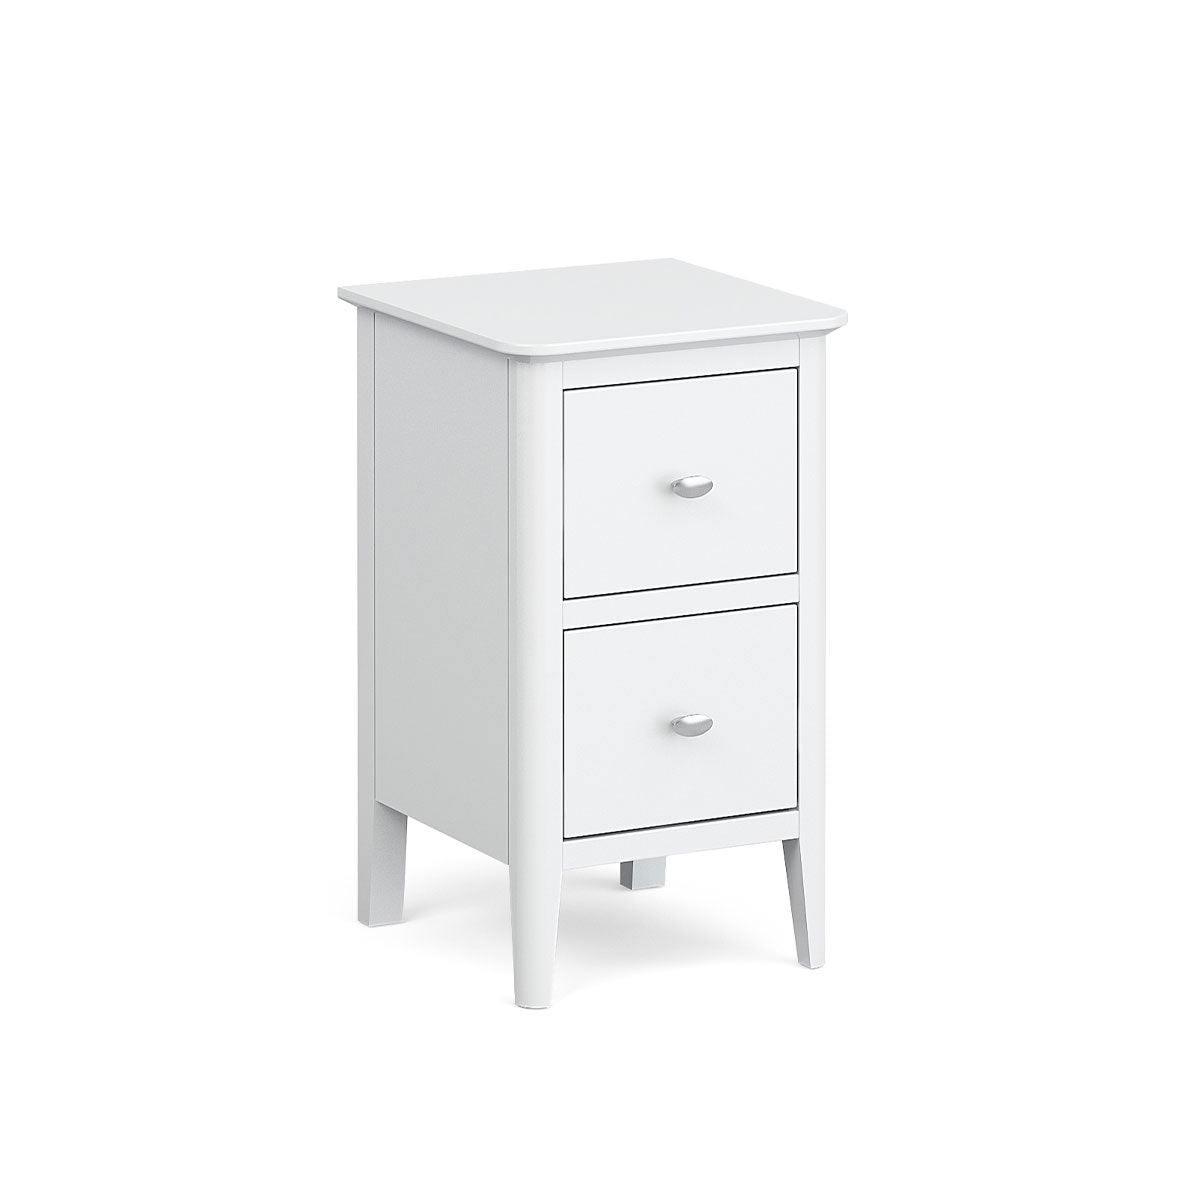 Hampstead Narrow Bedside Cabinet